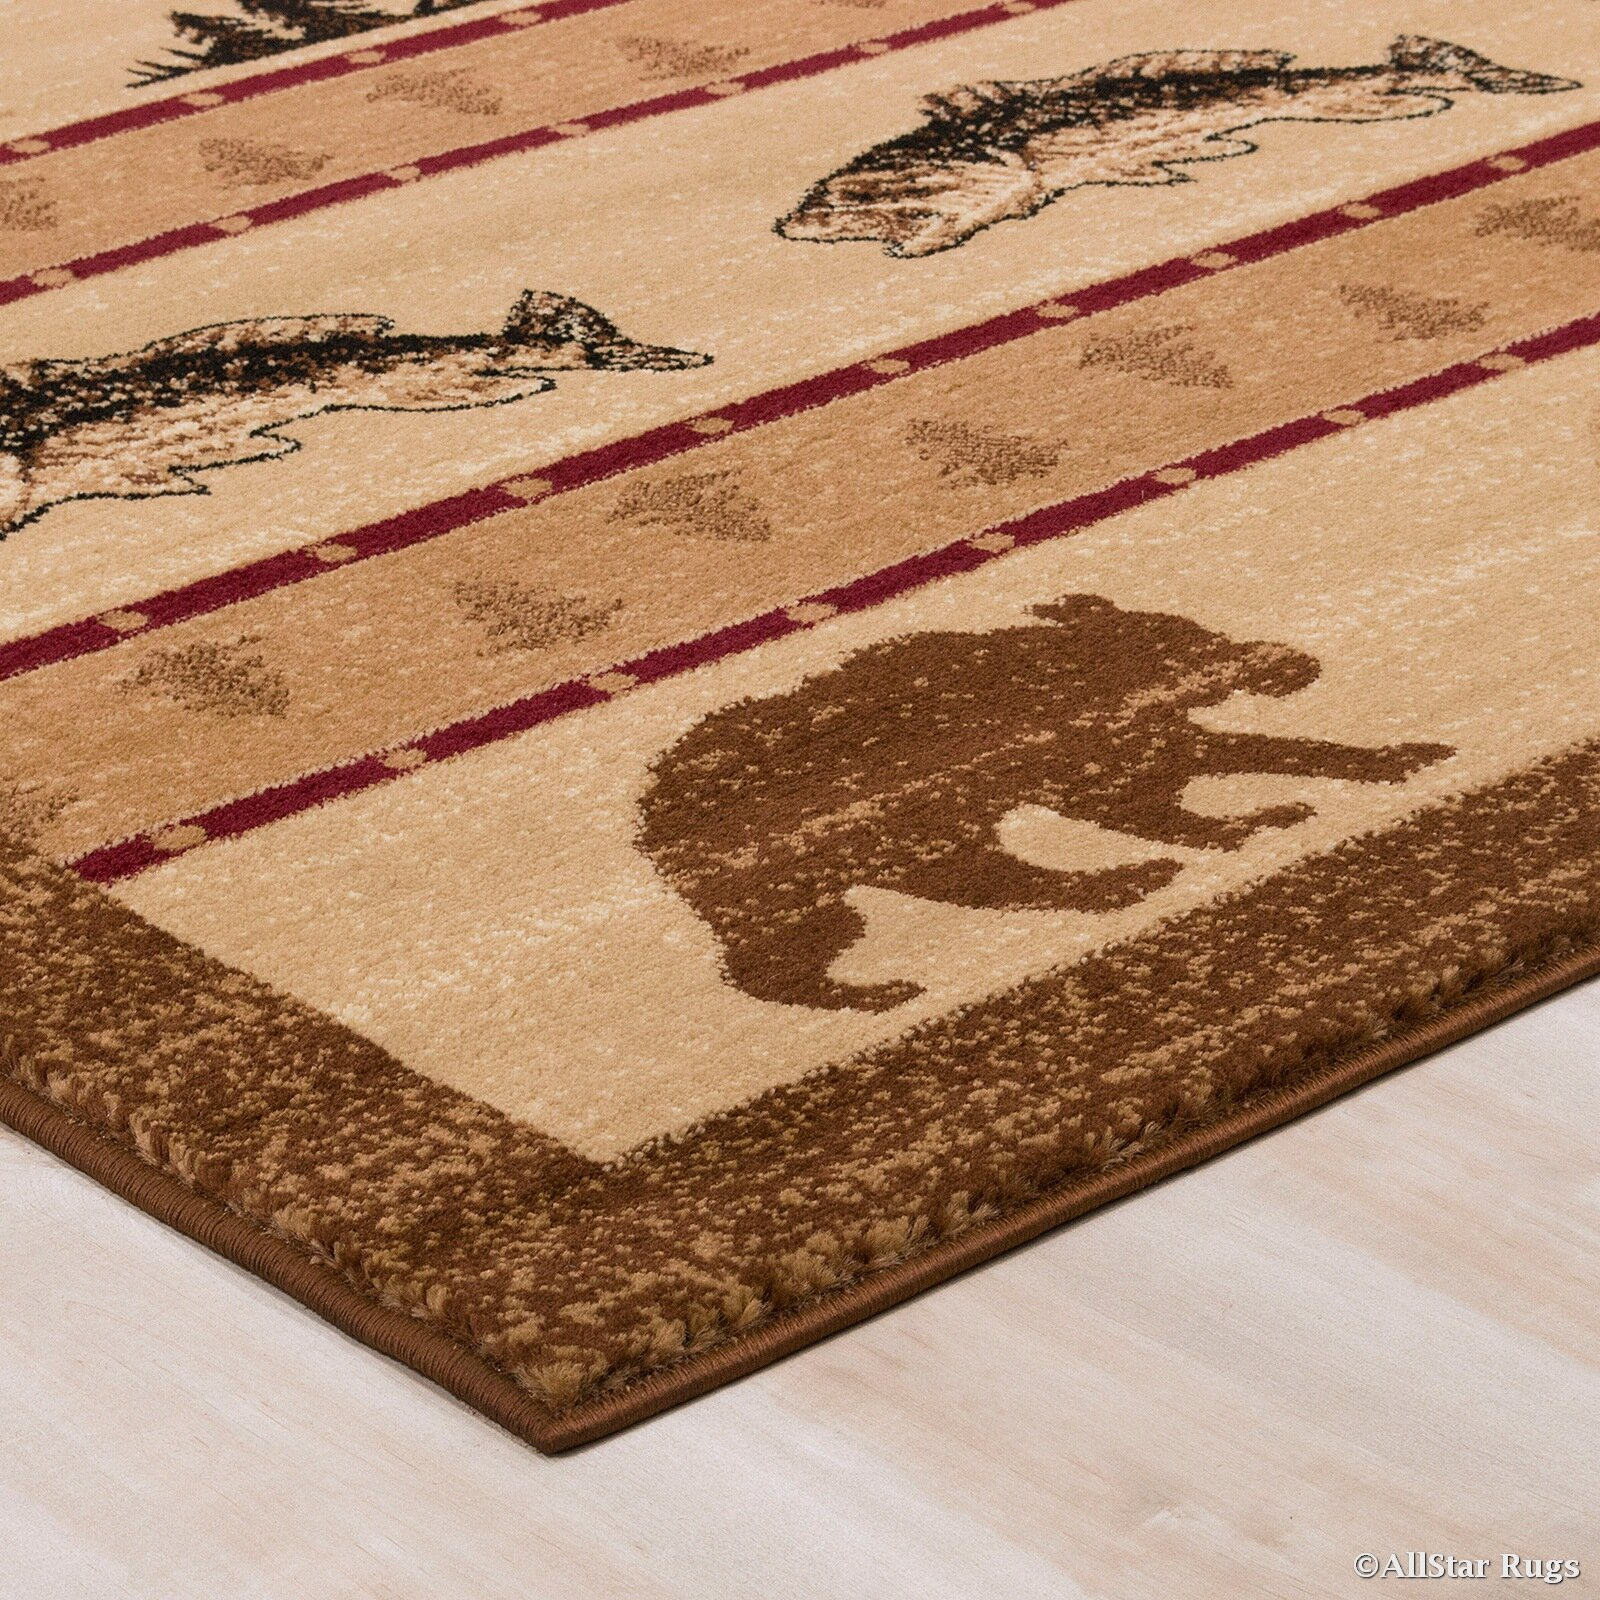 Allstar rugs hand woven brown area rug wayfair for Area carpets and rugs